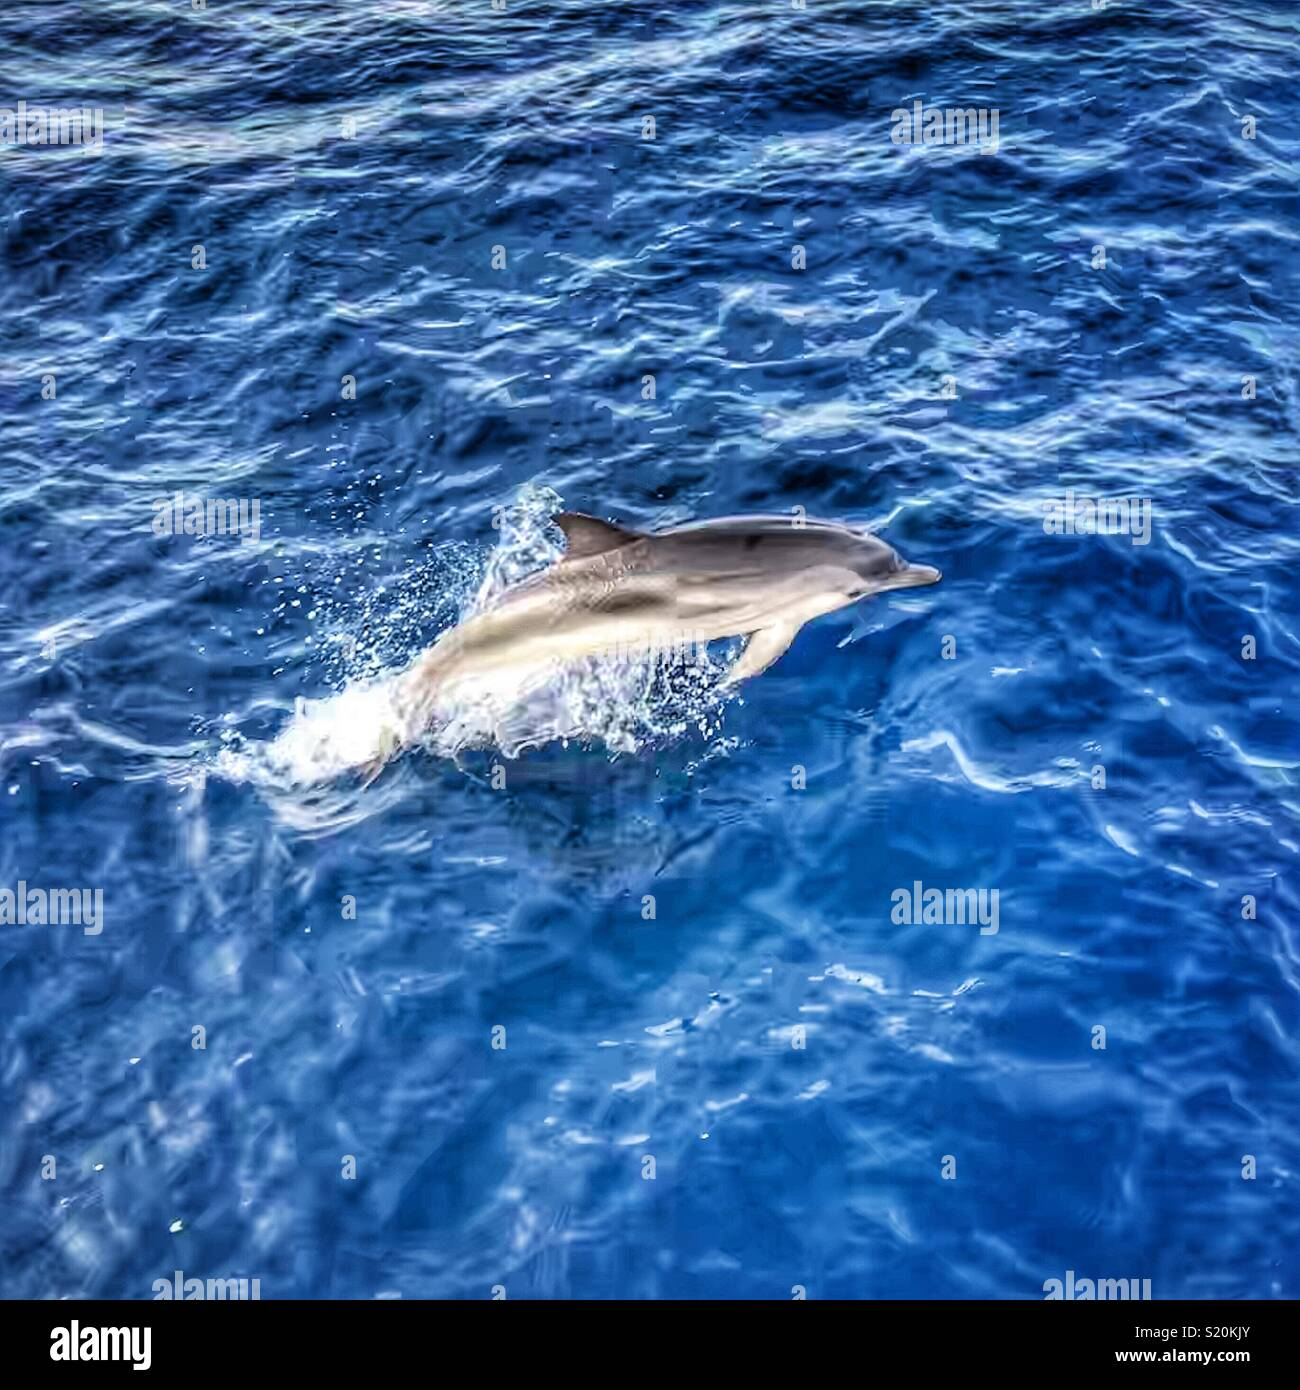 Common dolphin leaping out of the ocean - Stock Image